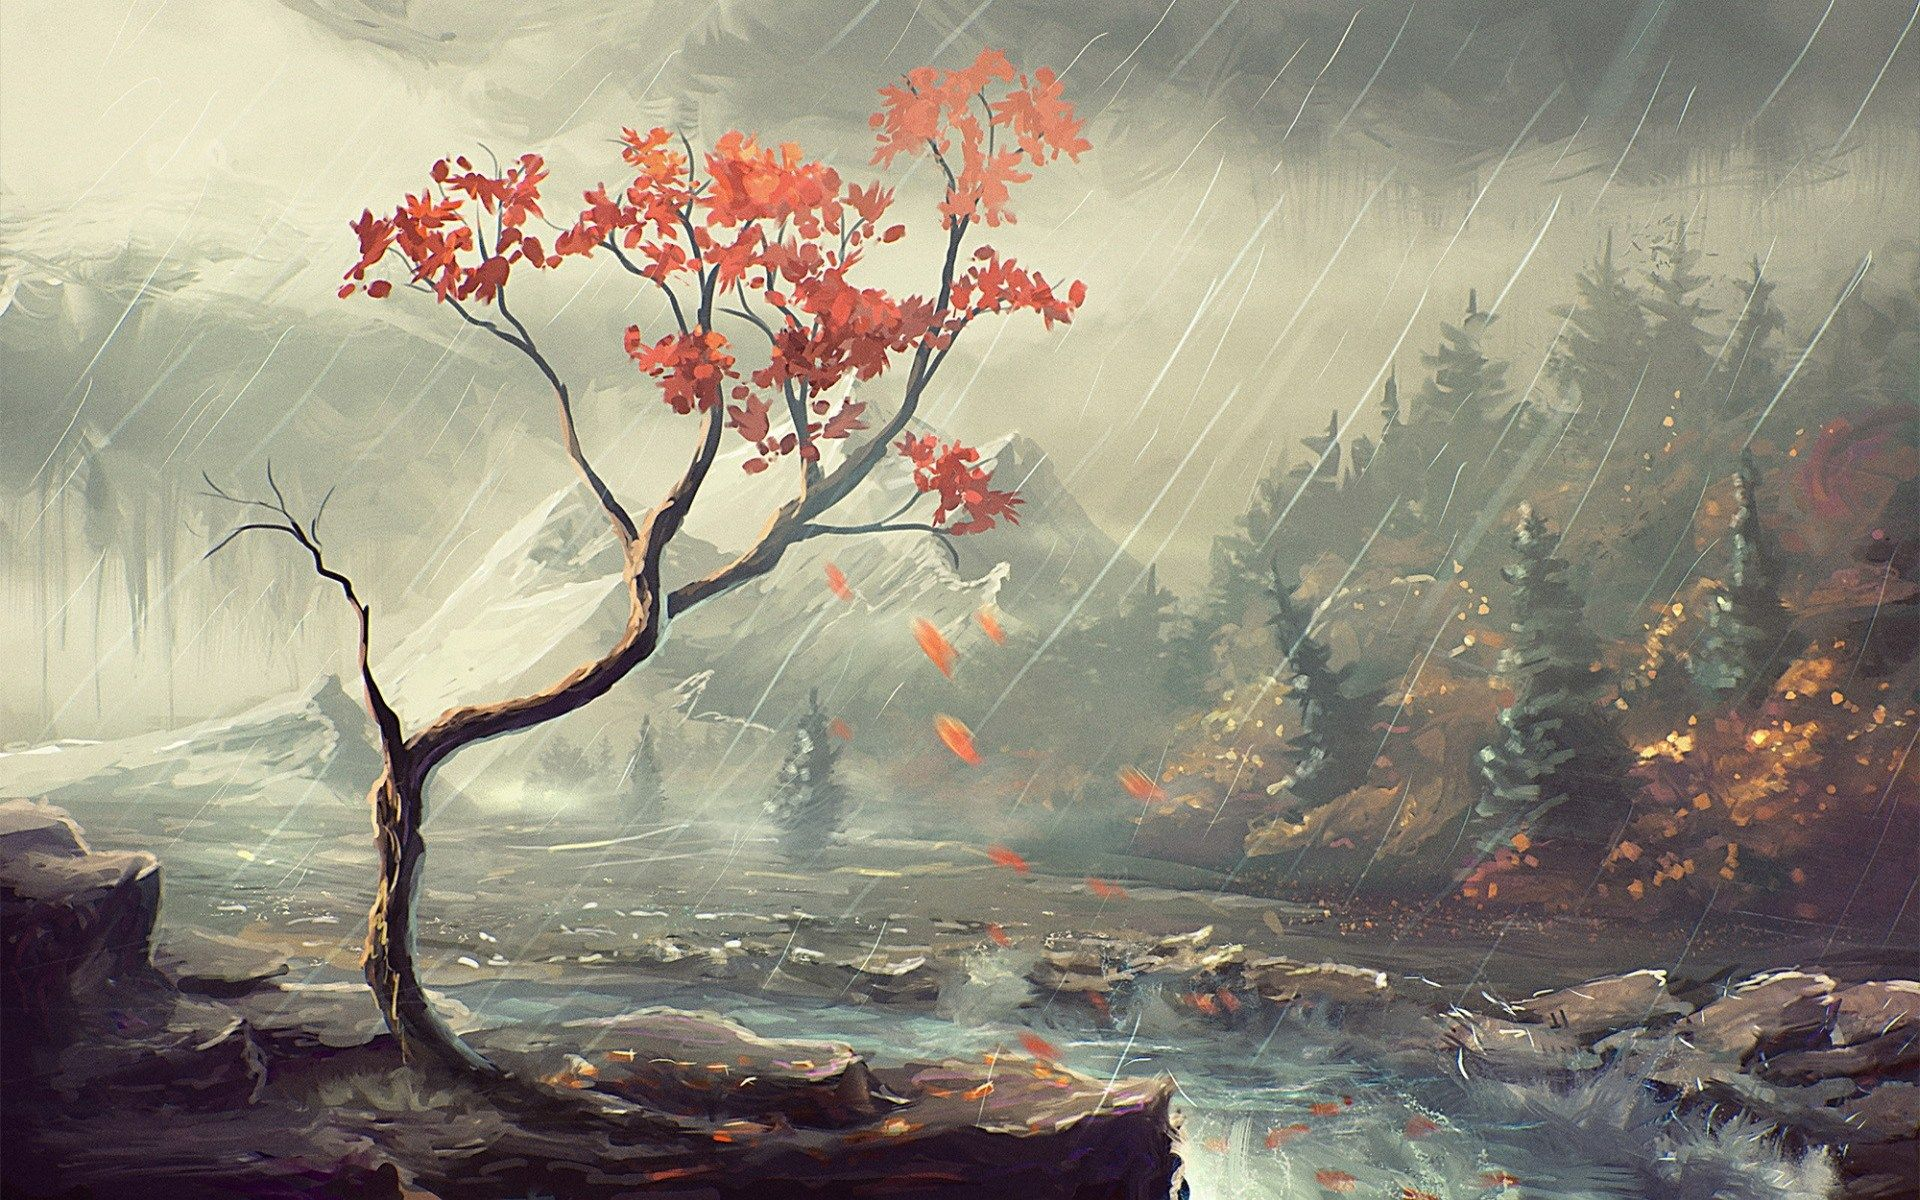 Forest Landscape Painting Wallpaper For Desktop Amp Mobile In High Resolution Free Download We Have Best Col Painting Wallpaper Landscape Paintings Painting